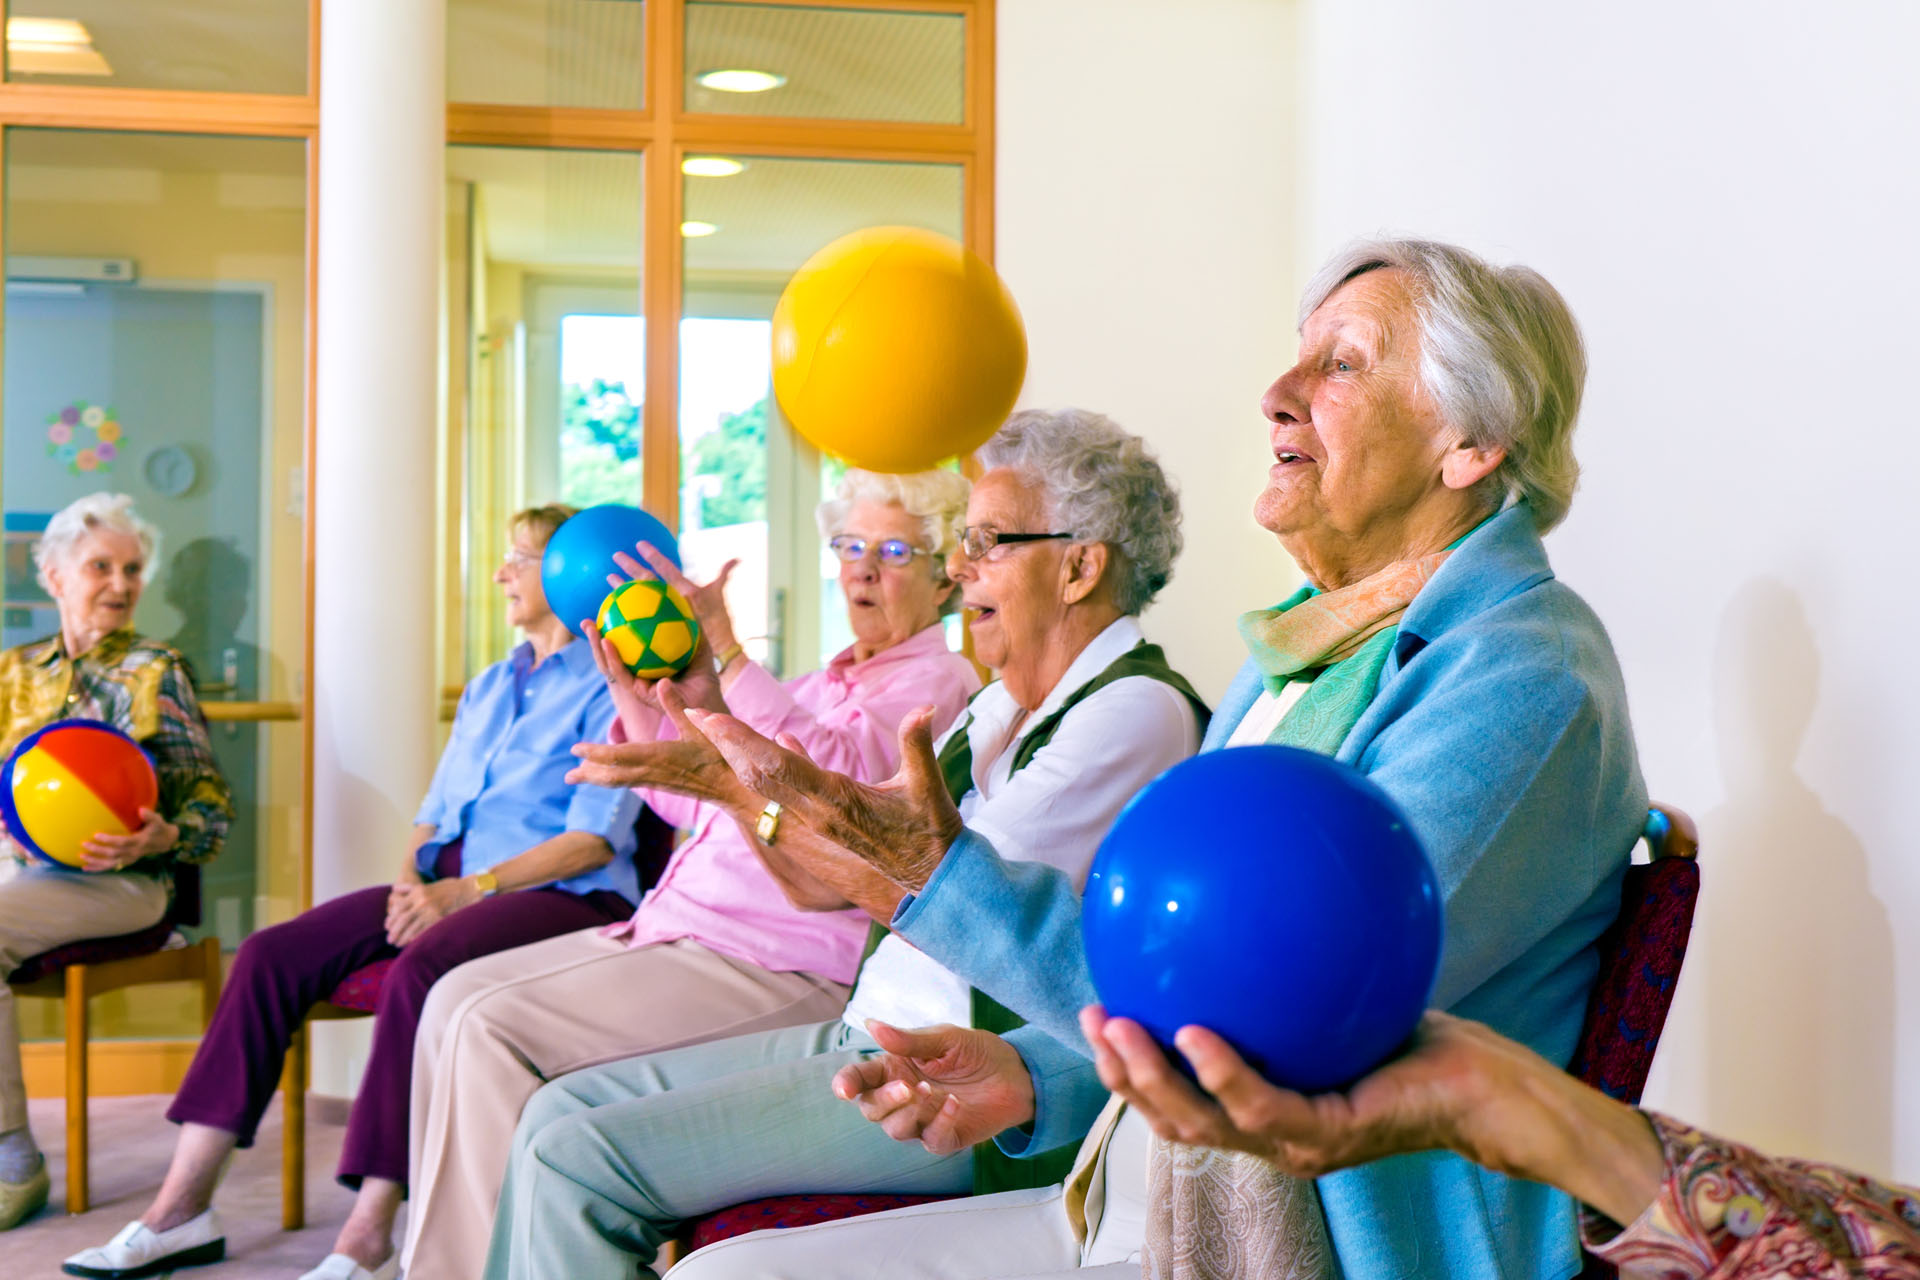 Group of happy senior ladies doing coordination exercises in a seniors gym sitting in chairs throwing and catching brightly colored balls.